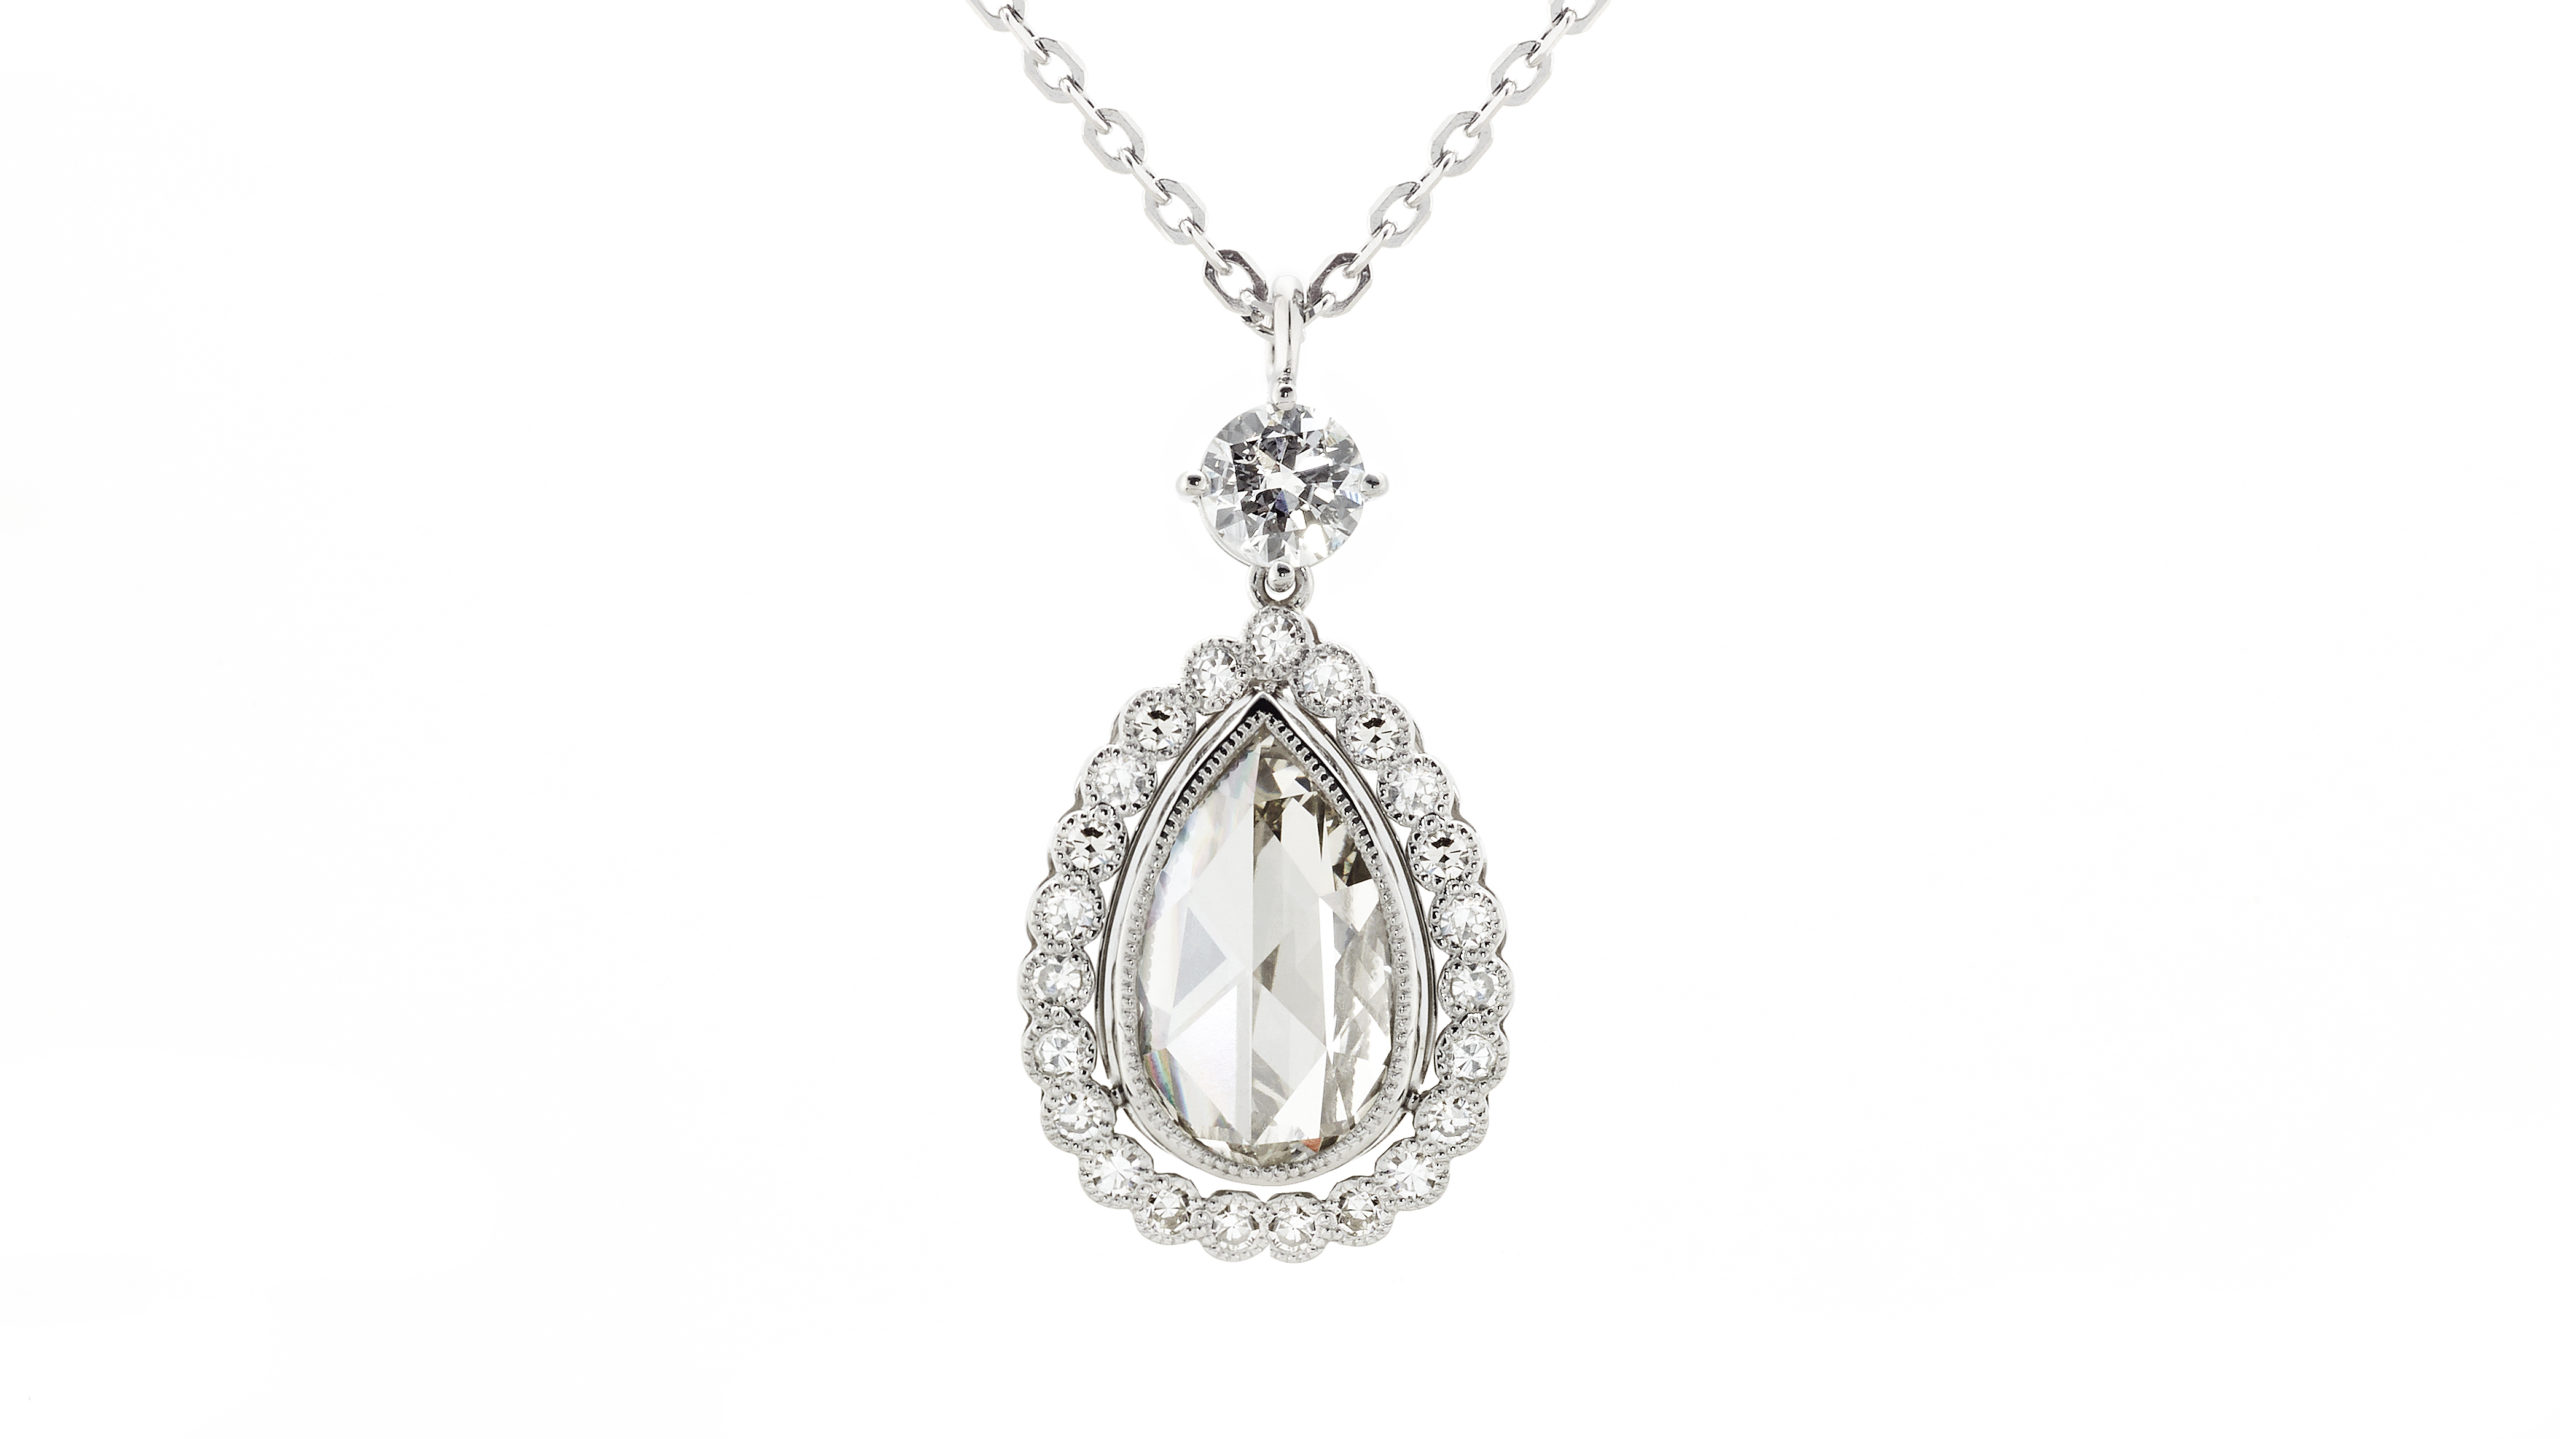 Rose Cut & Old Cut Diamond Drop Pendant   A beautiful vintage-style A 2.16ct antique rose cut diamond, surrounded by 0.62cts of small diamonds. Handcrafted in platinum